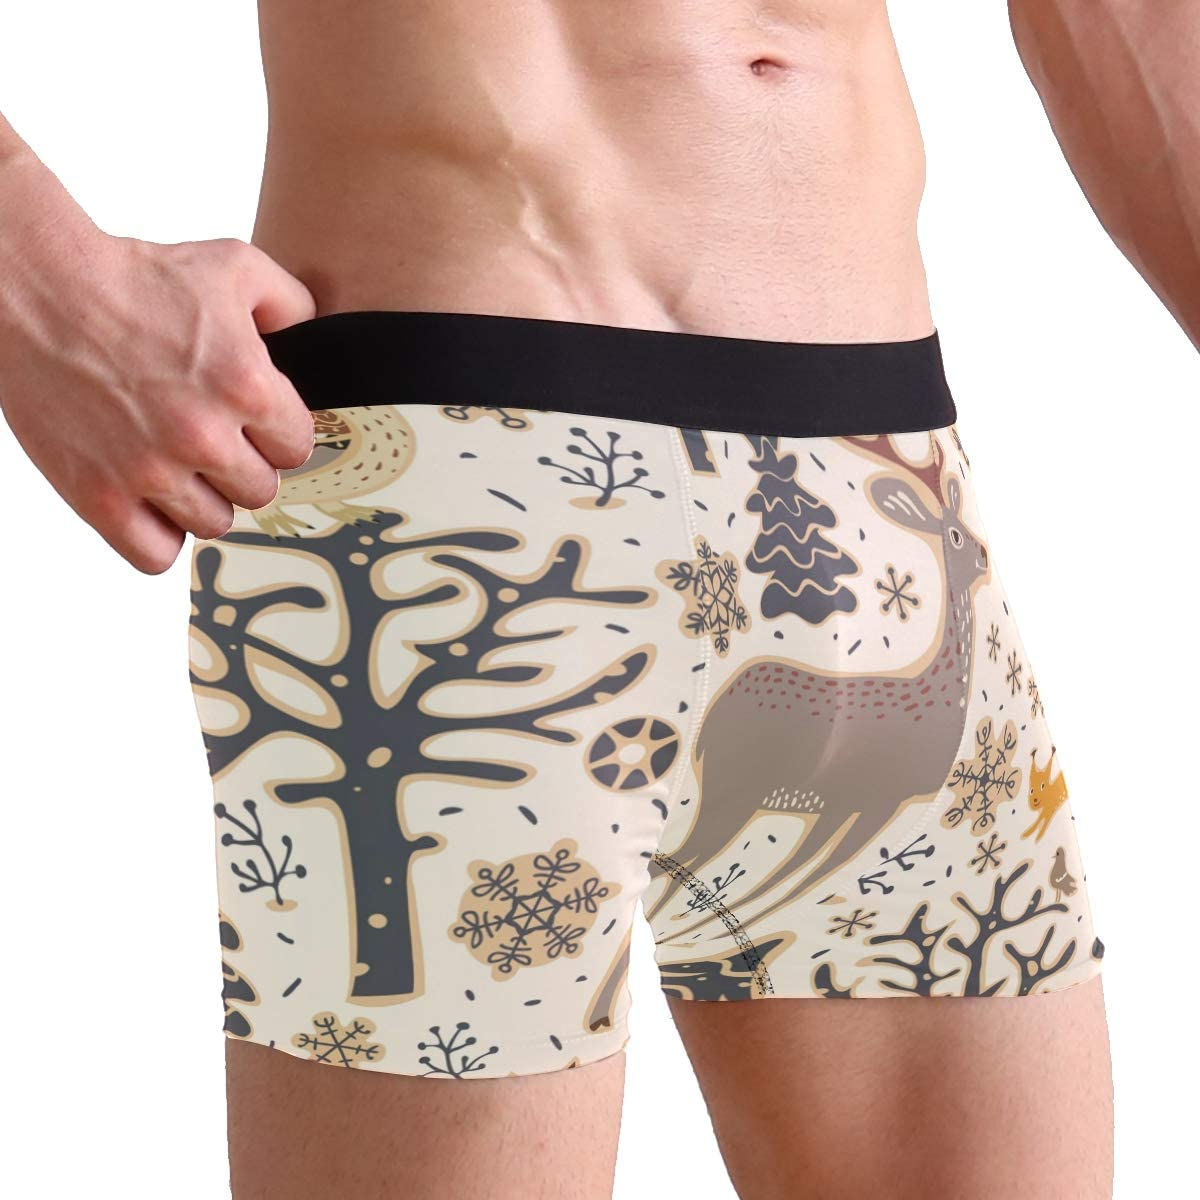 Pack of 2 Christmas Elk Deer Fox Owl Mens Underwear Soft Polyester Boxer Brief Birthday Christmas Gifts for Men Boyfriend Teen Boys Children Friends Family